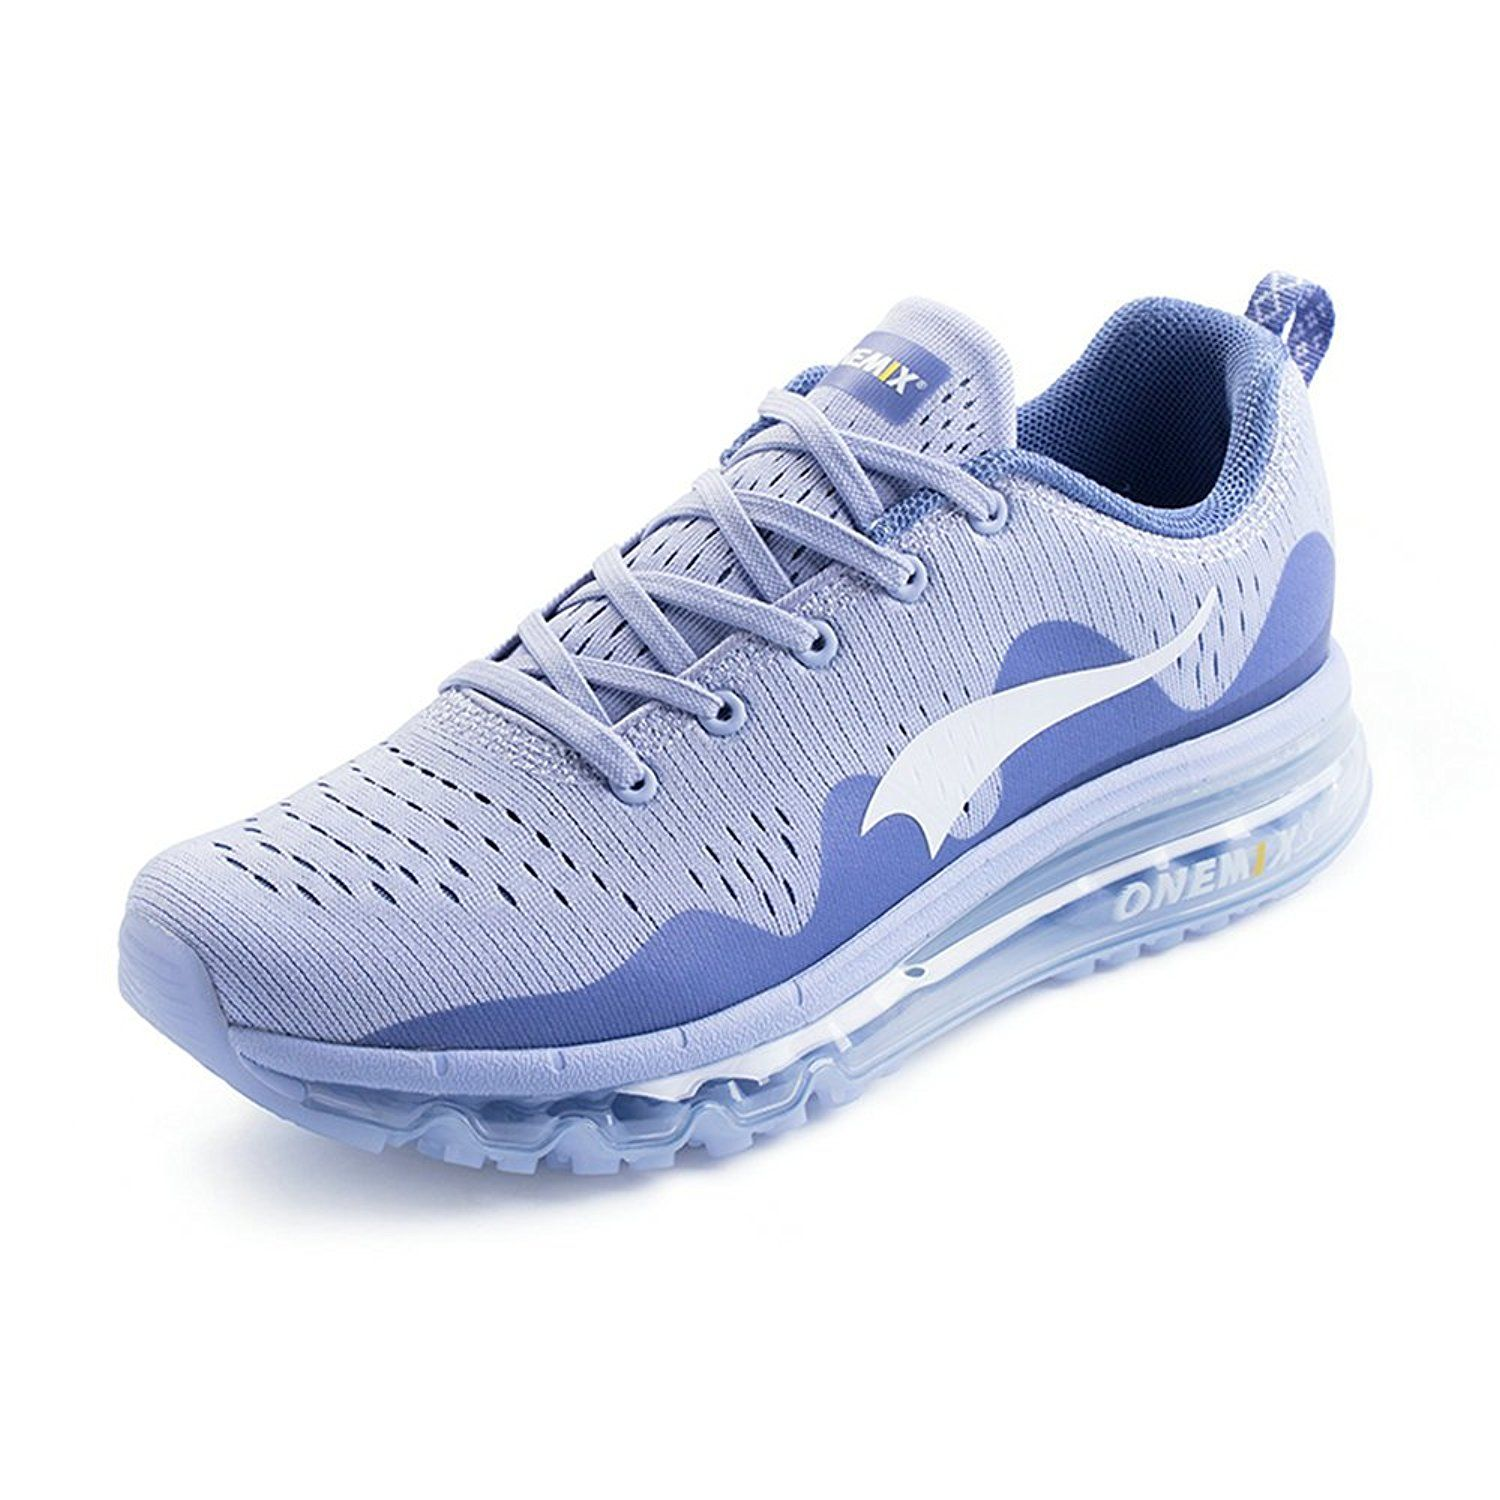 Wave Sports Cushion Air Running Onemix Men's Shoes New Casual uF1JKTcl3